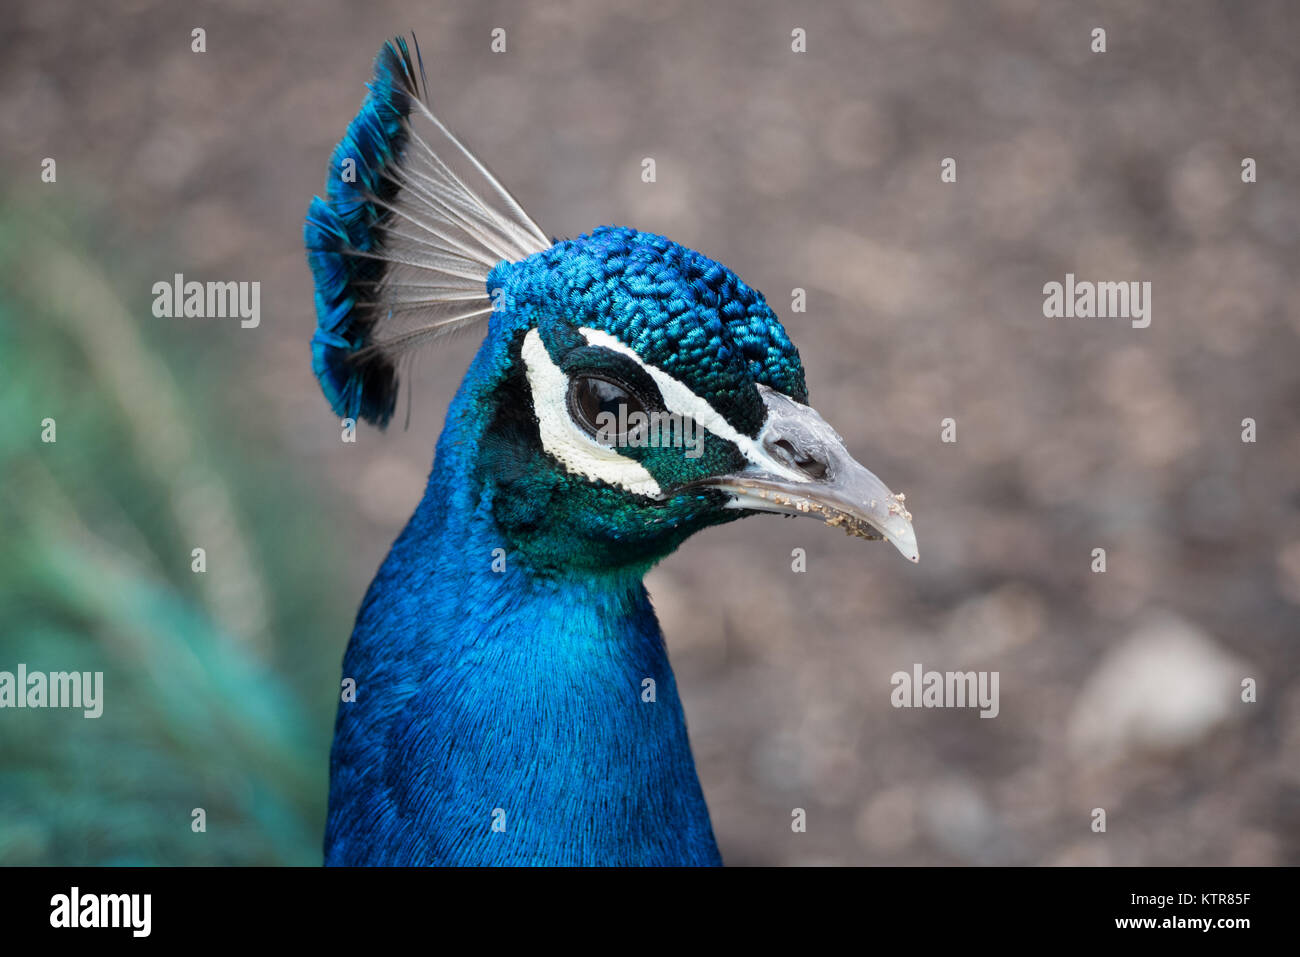 peacock in an australian zoo - Stock Image